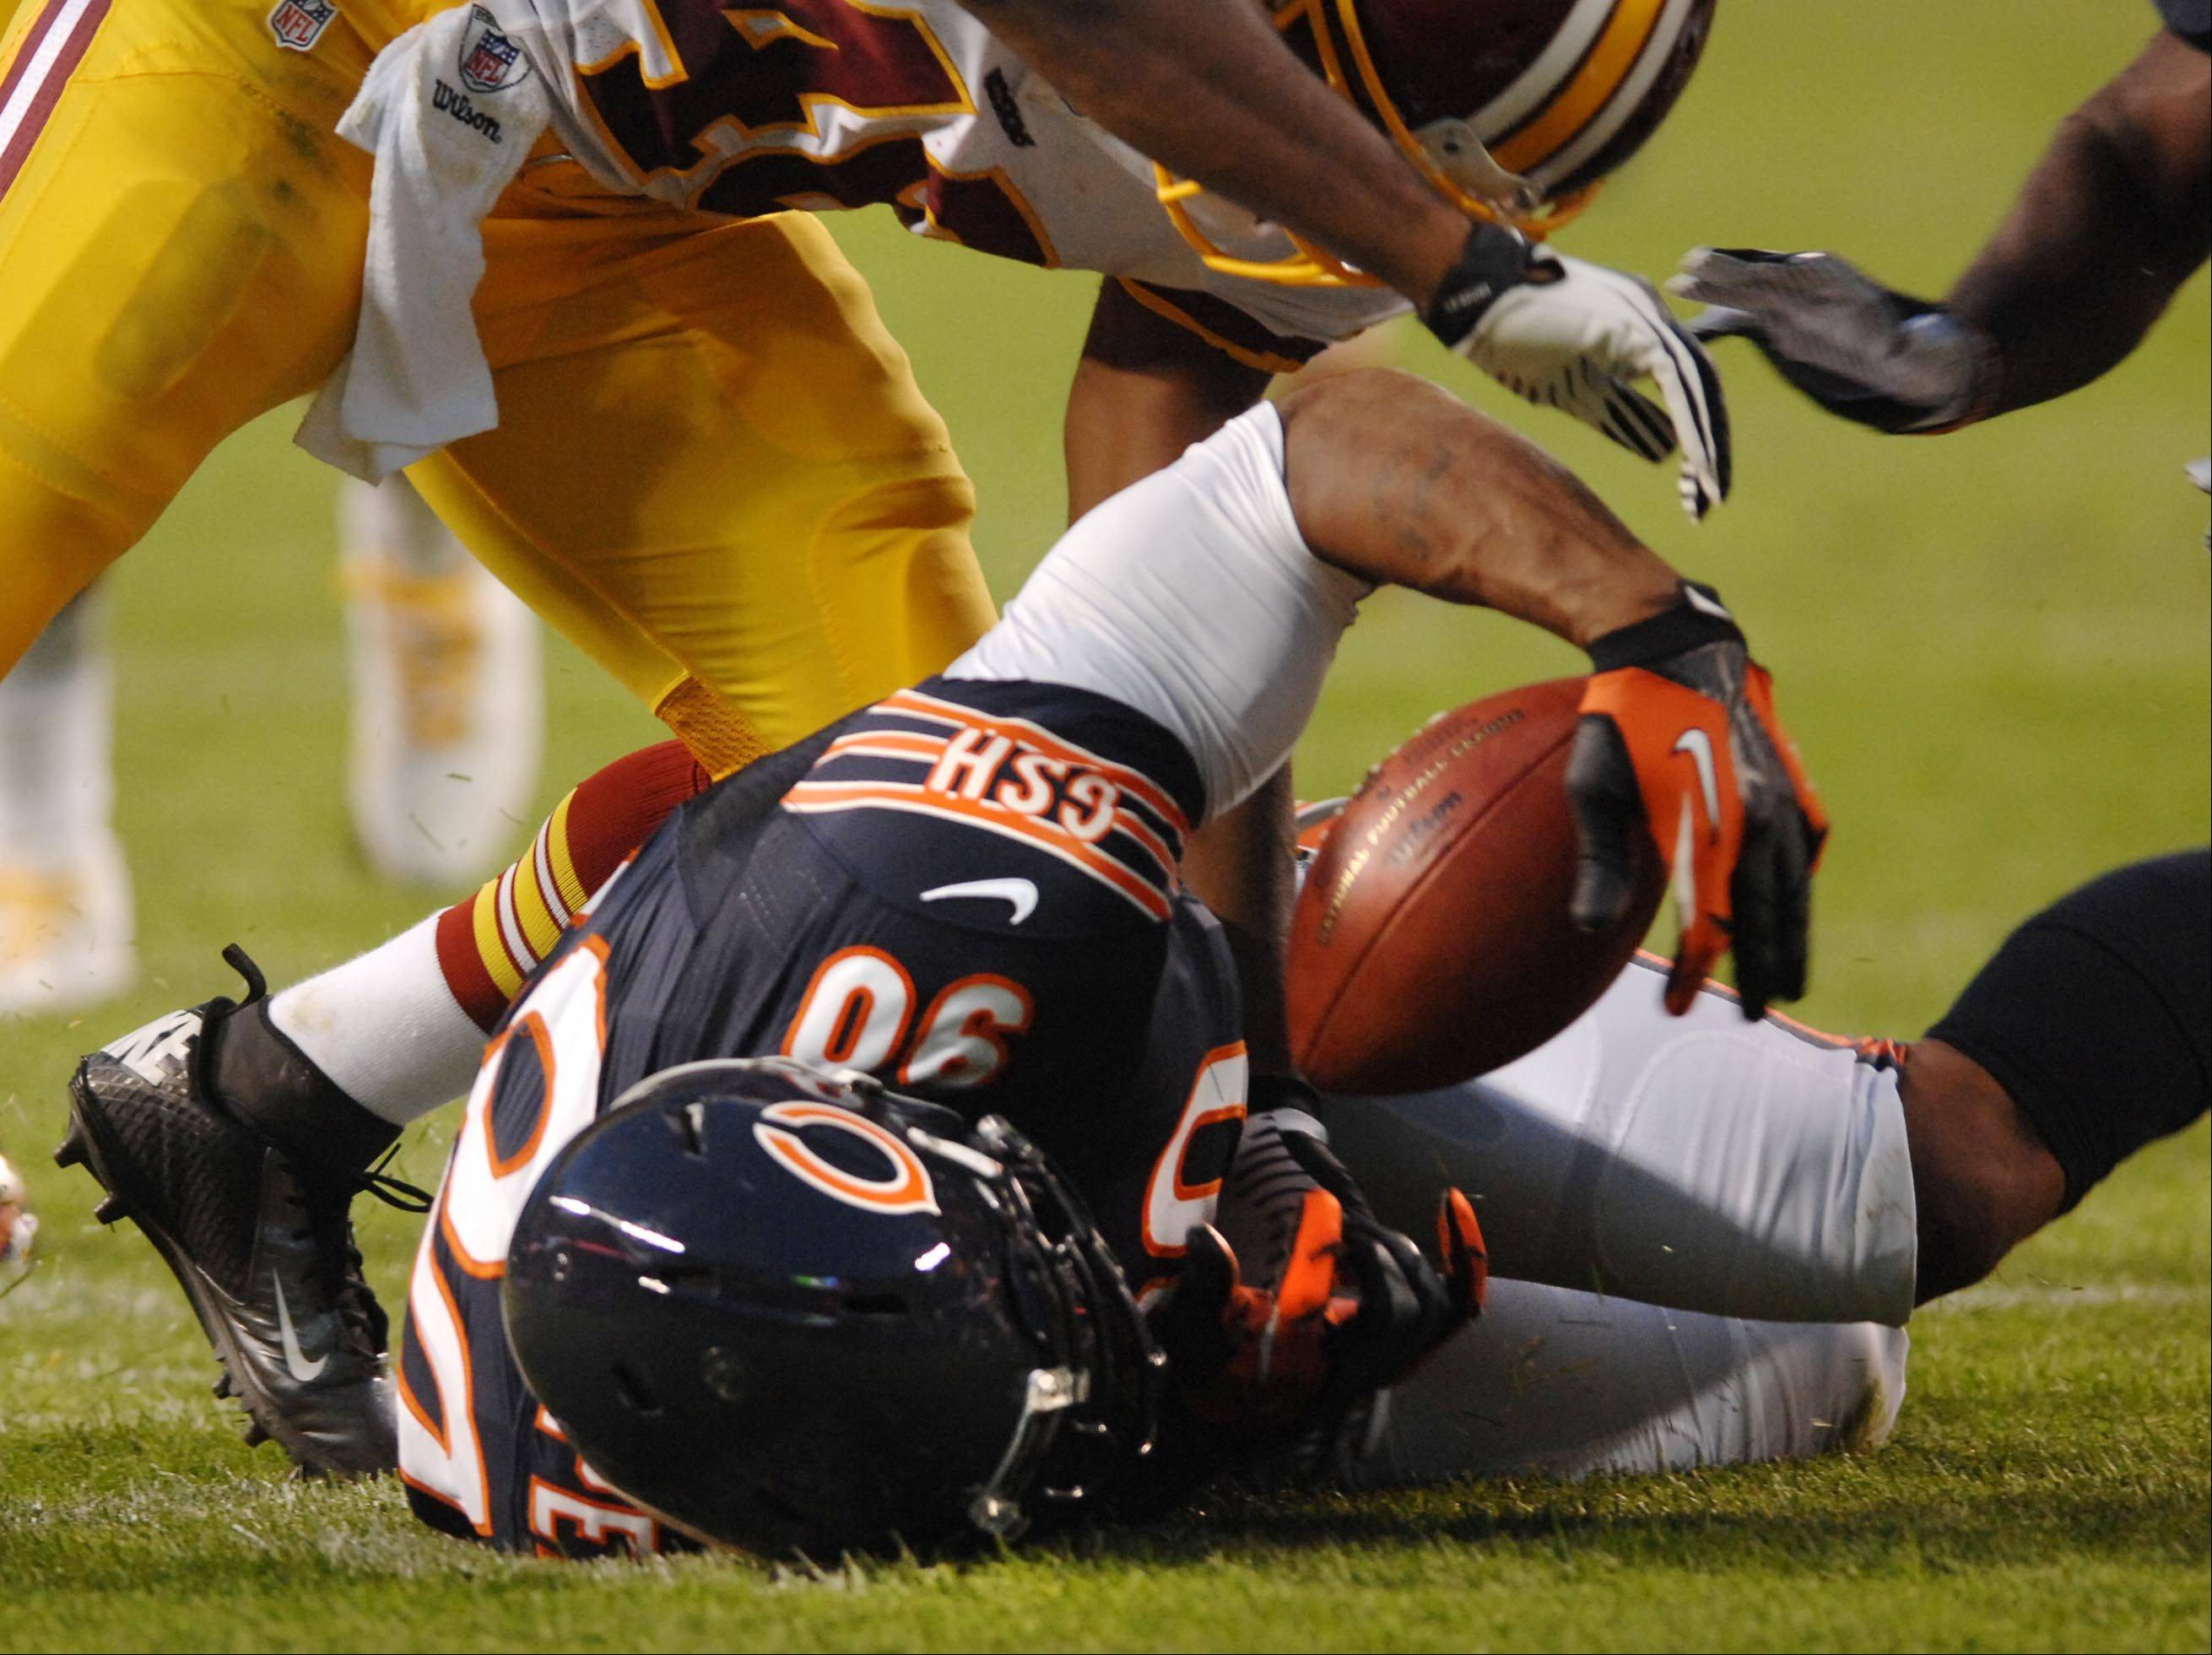 Chicago Bears defensive end Julius Peppers recovers a fumble in the first half Saturday against the Washington Redskins in the second preseason game at Soldier Field in Chicago.